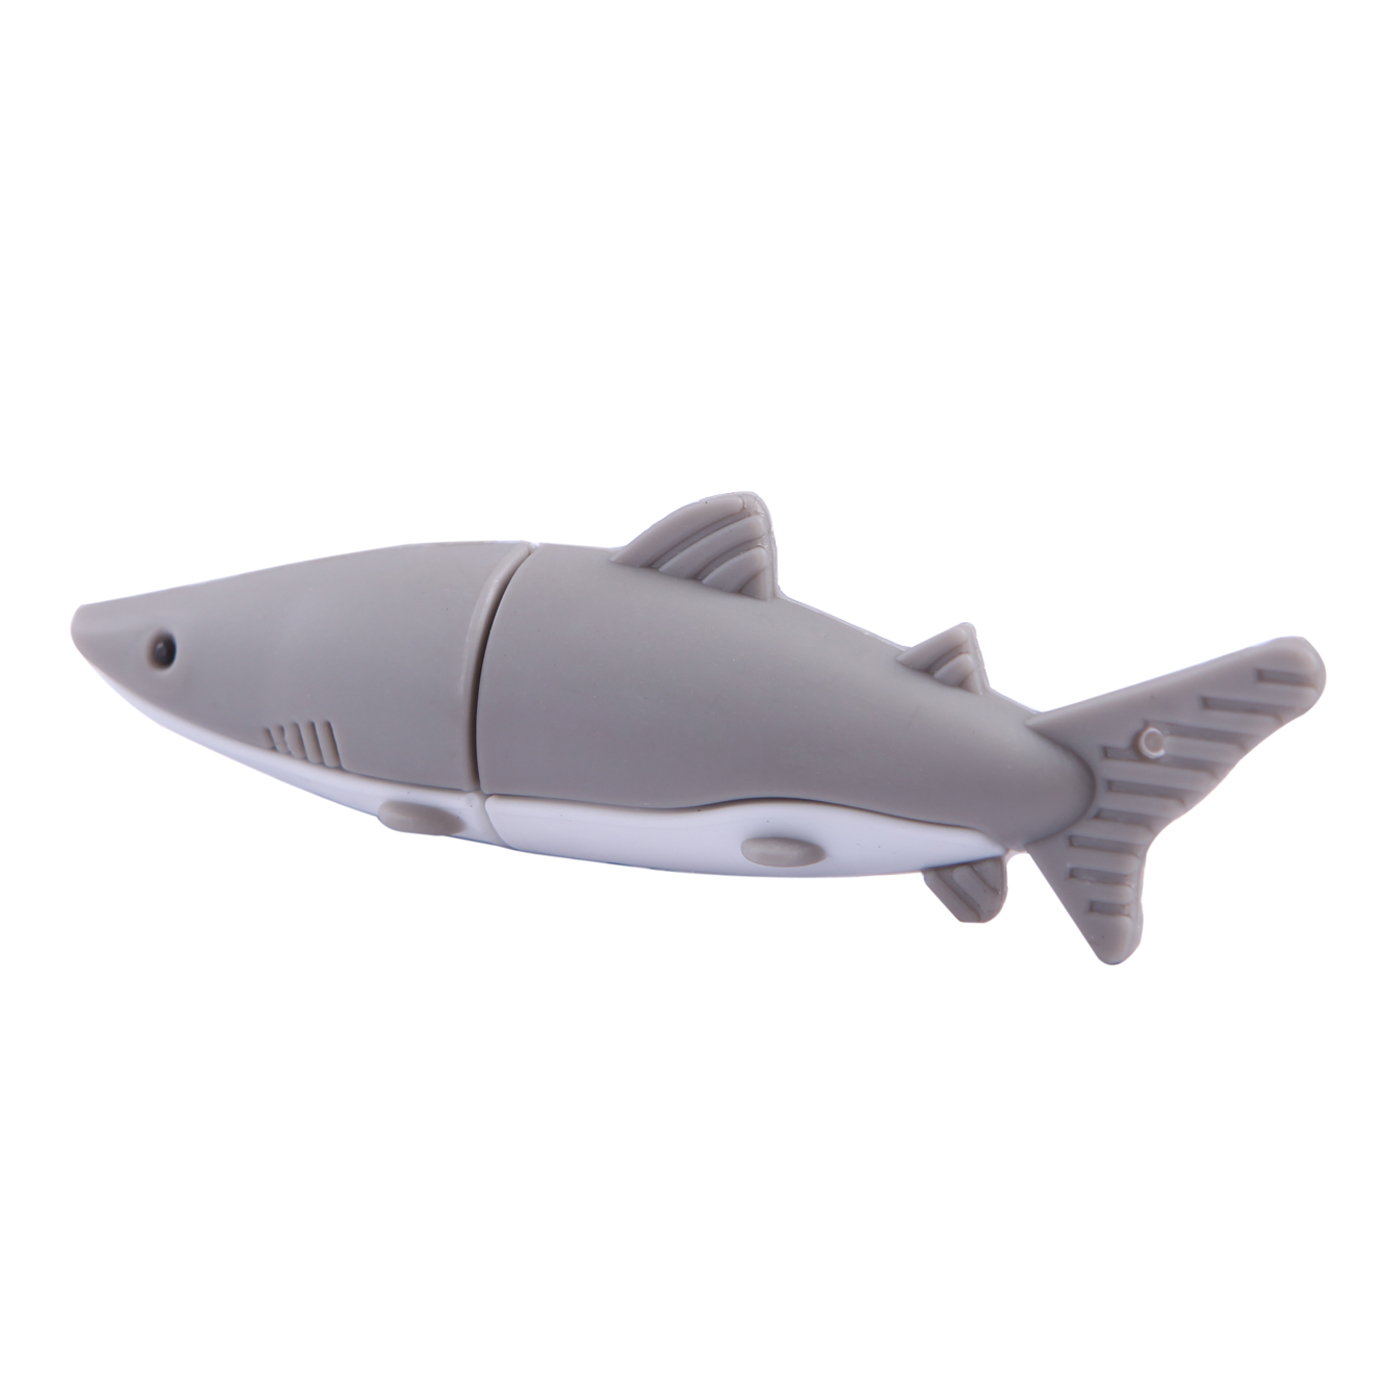 HDE 16GB USB 3.0 Novelty Flash Drive Great White Shark Design High Capacity Thumb Drive